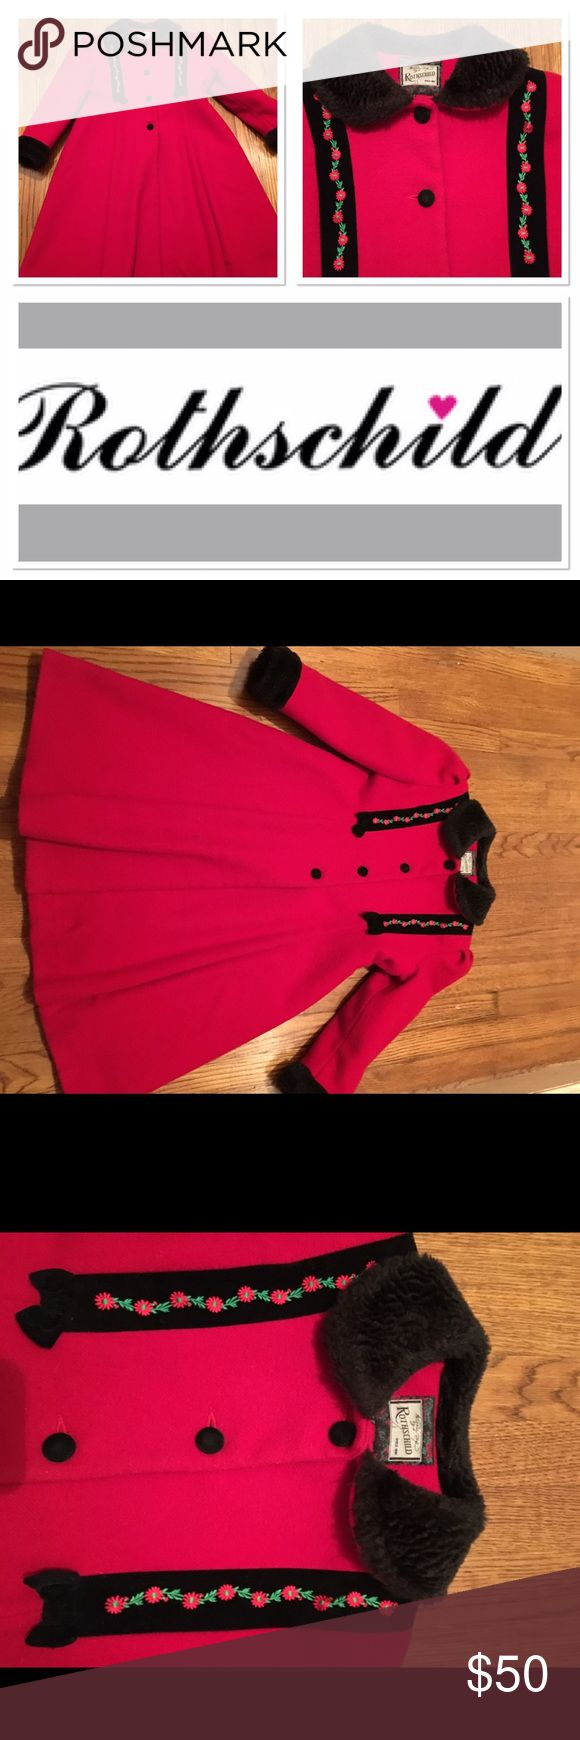 Rothschild beautiful red jacket Size 6X girls would look great for the holidays Rothschild Jackets & Coats Pea Coats